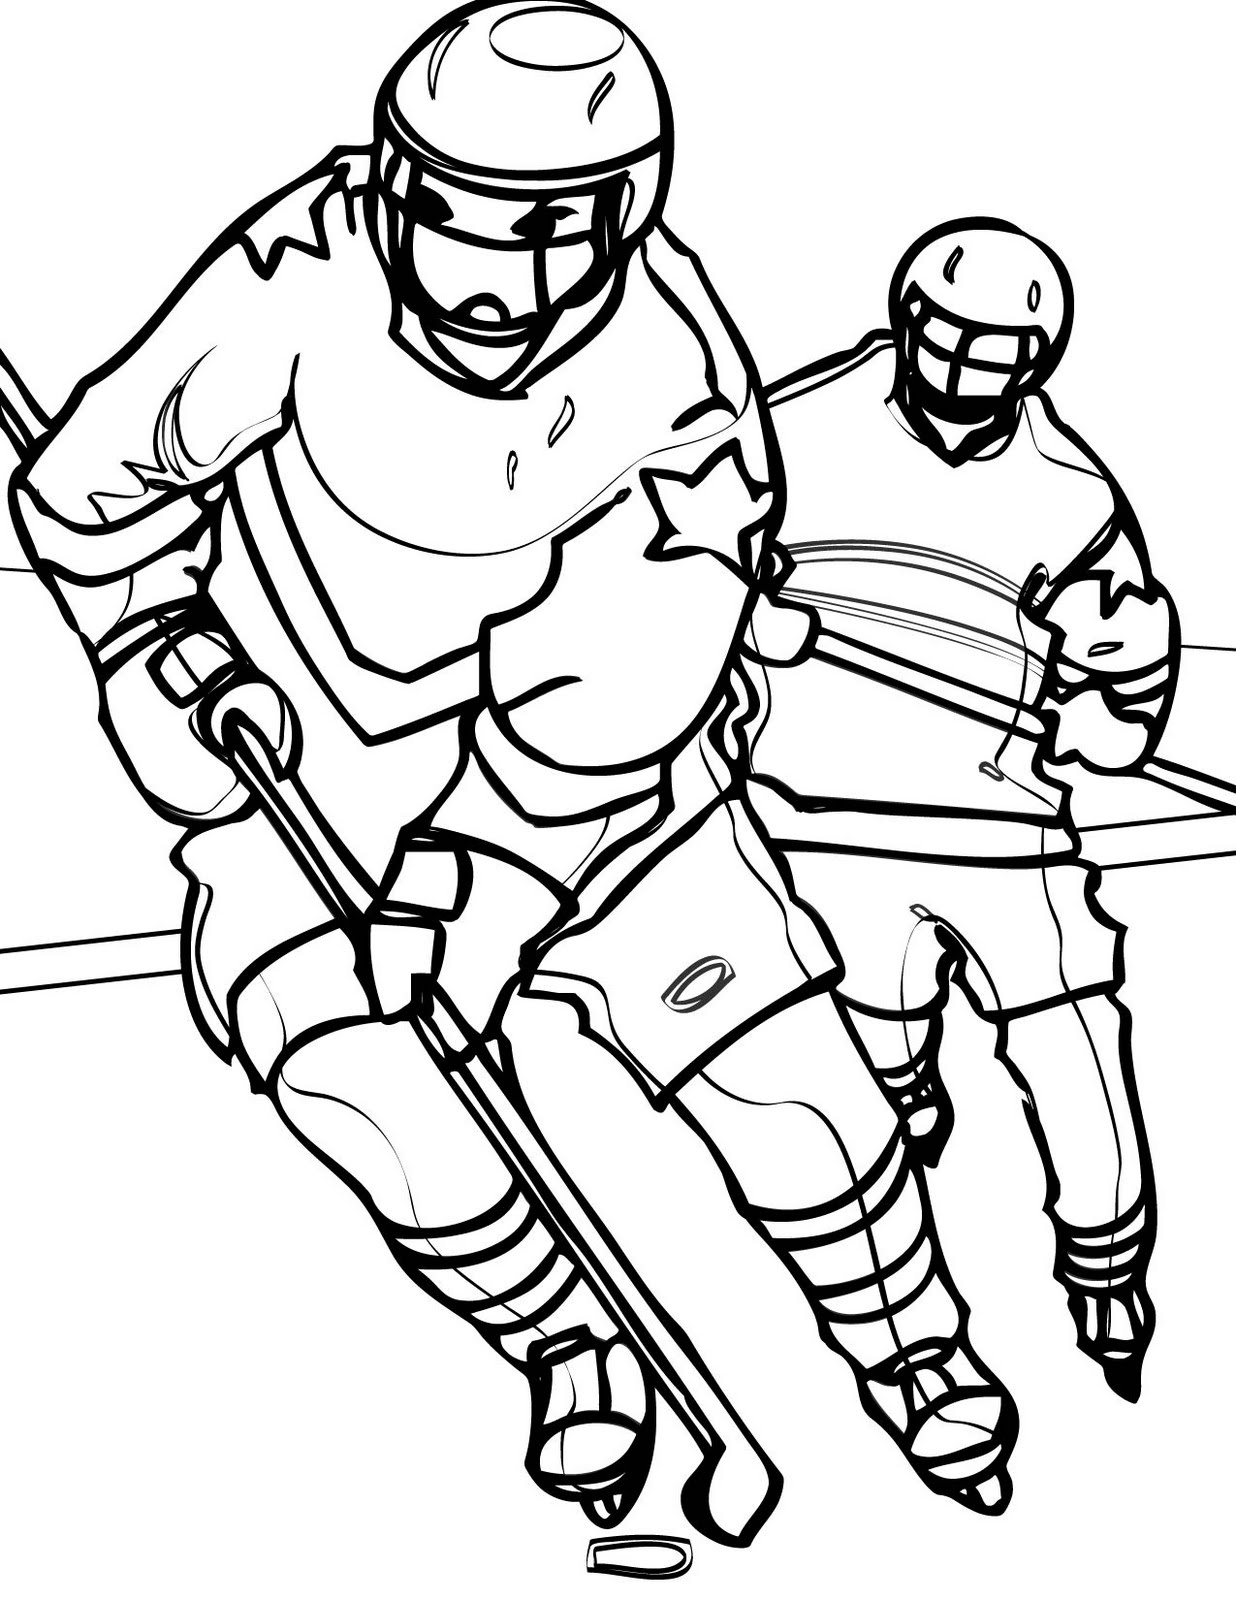 hockey coloring pages to print hockey player coloring pages to download and print for free pages hockey to coloring print